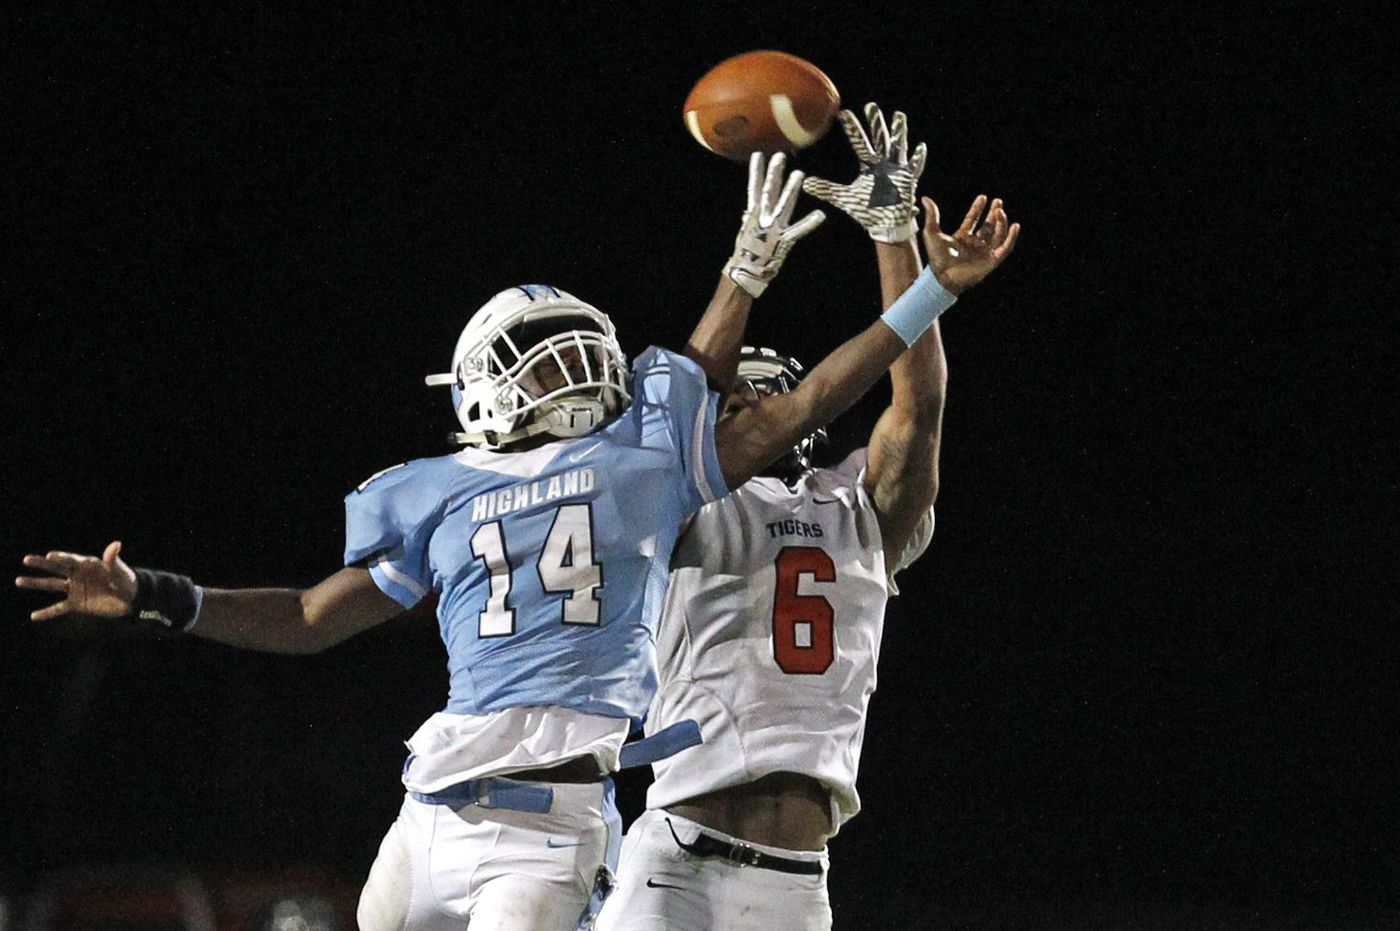 Winslow Twp. at Highland among games to watch this weekend